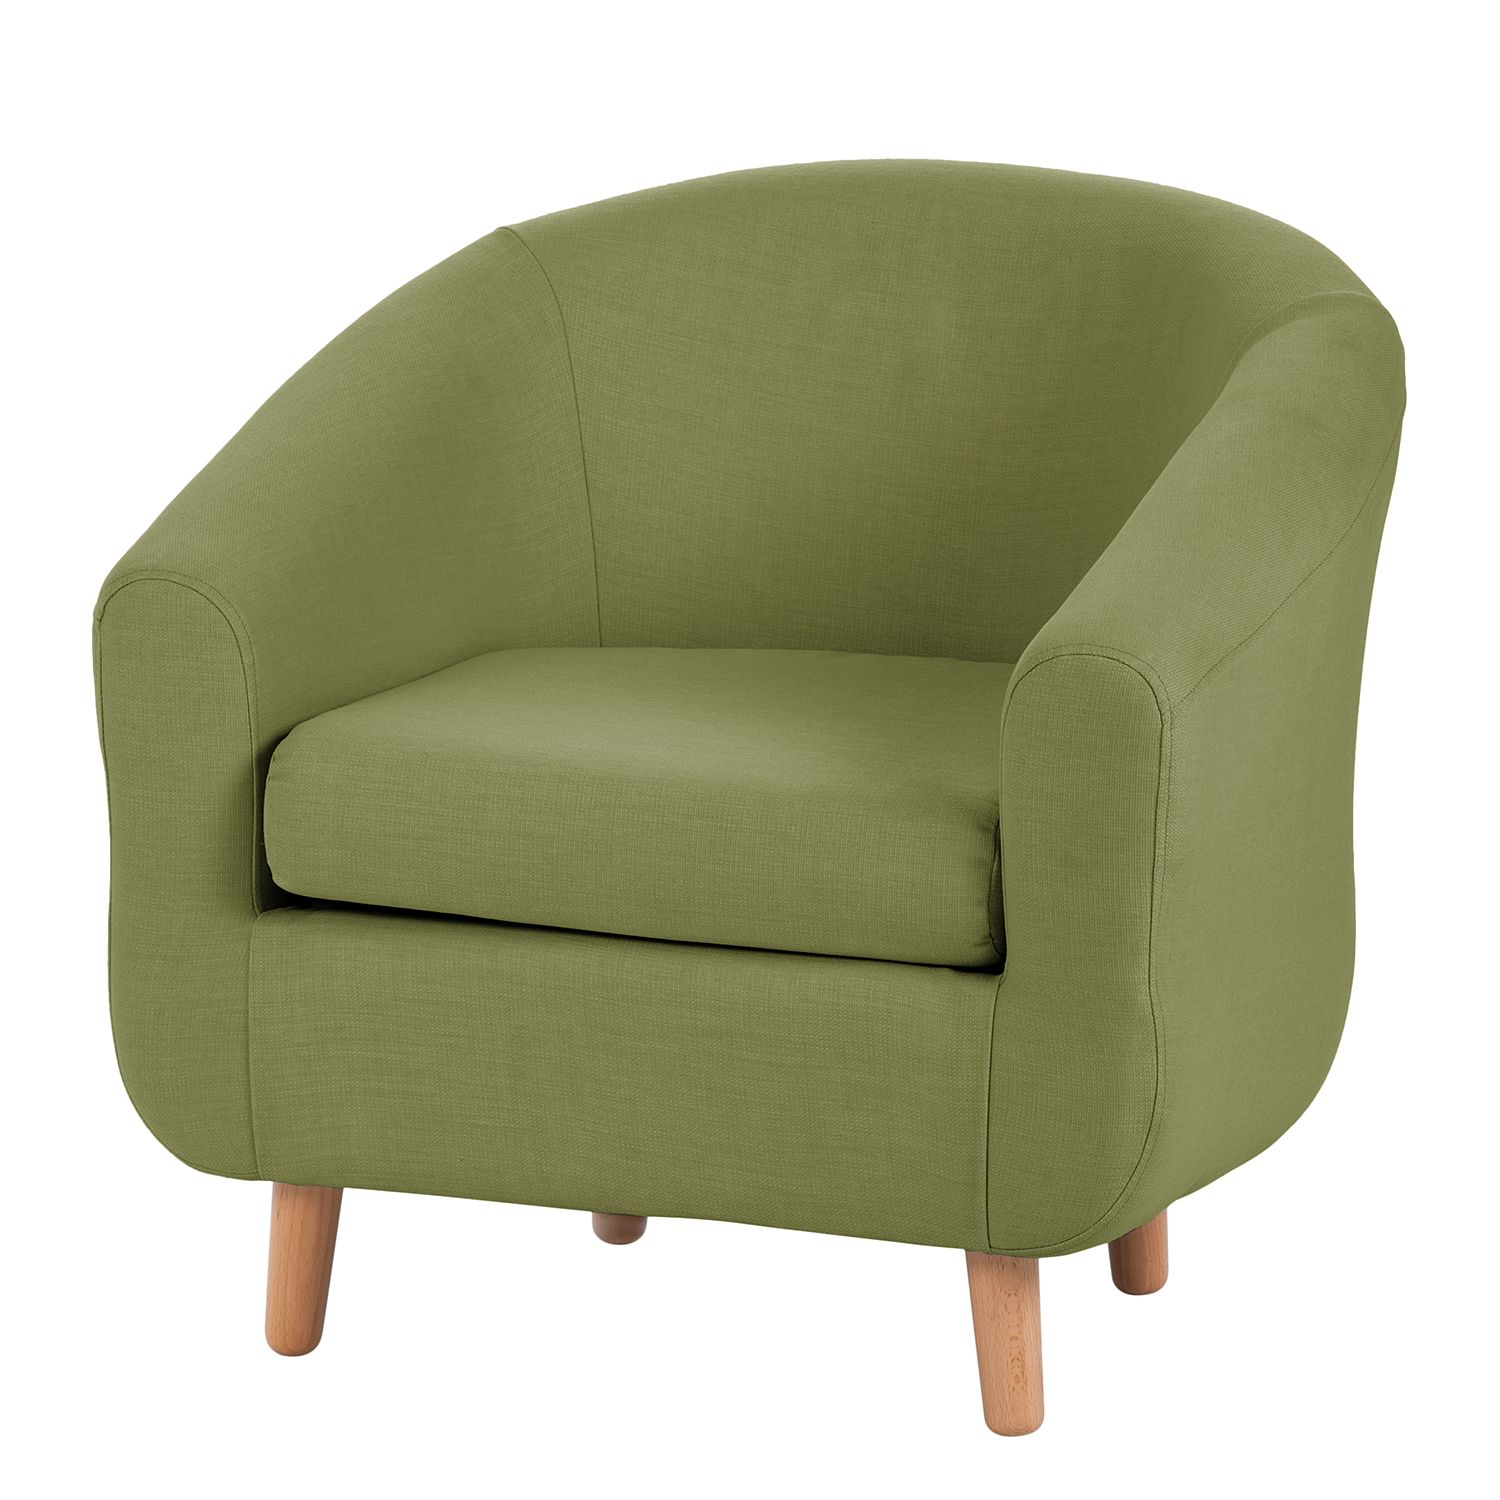 Fauteuil Little - Tissu vert olive, mooved